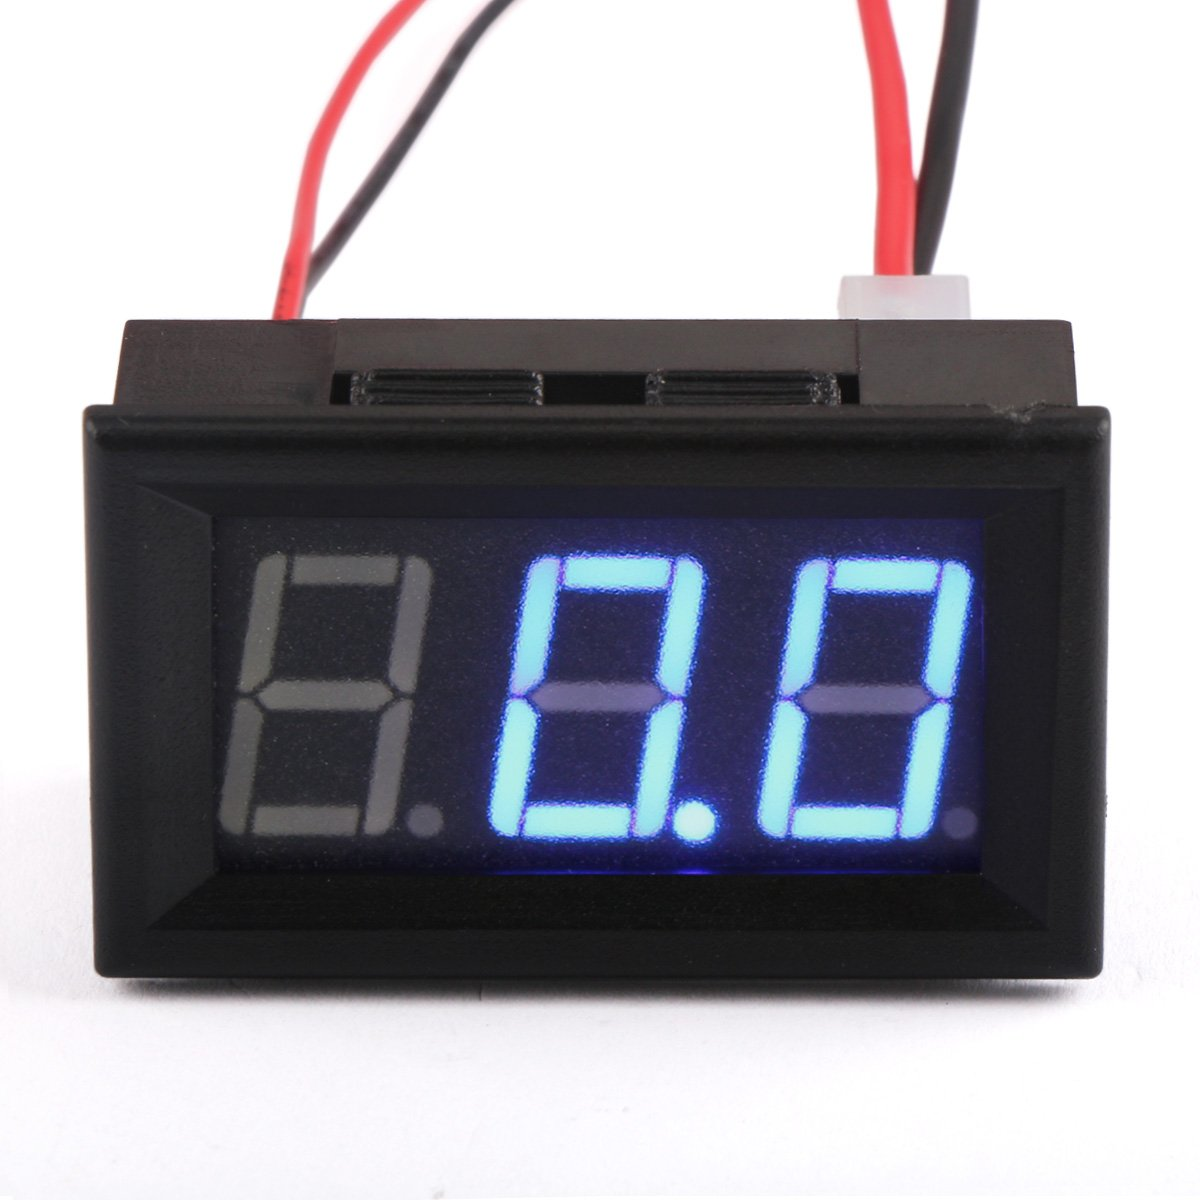 Dc Amp Meter Drok Small Digital Ammeter Gauge Ampere Panel Wiring Diagram Free Picture Reader 056 100a Electric Current Detector 0 To 999a Amperage Tester Blue Led